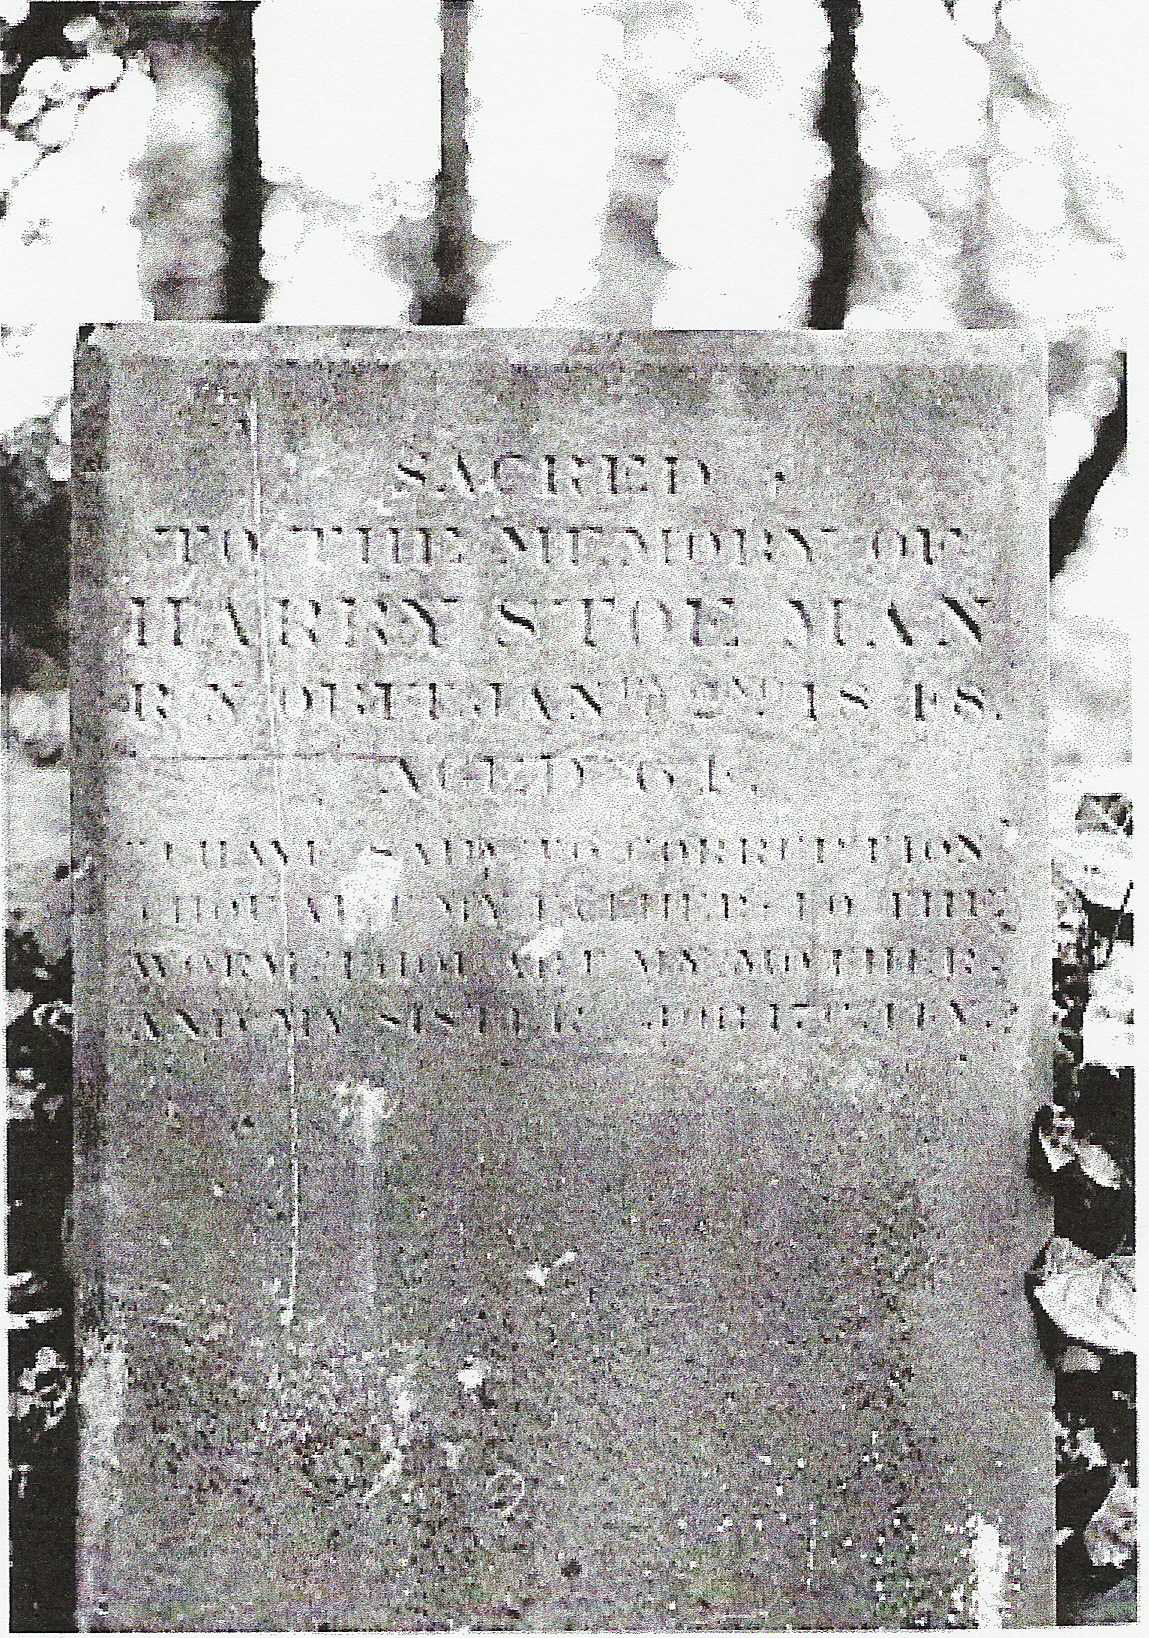 harry stoe man grave stone